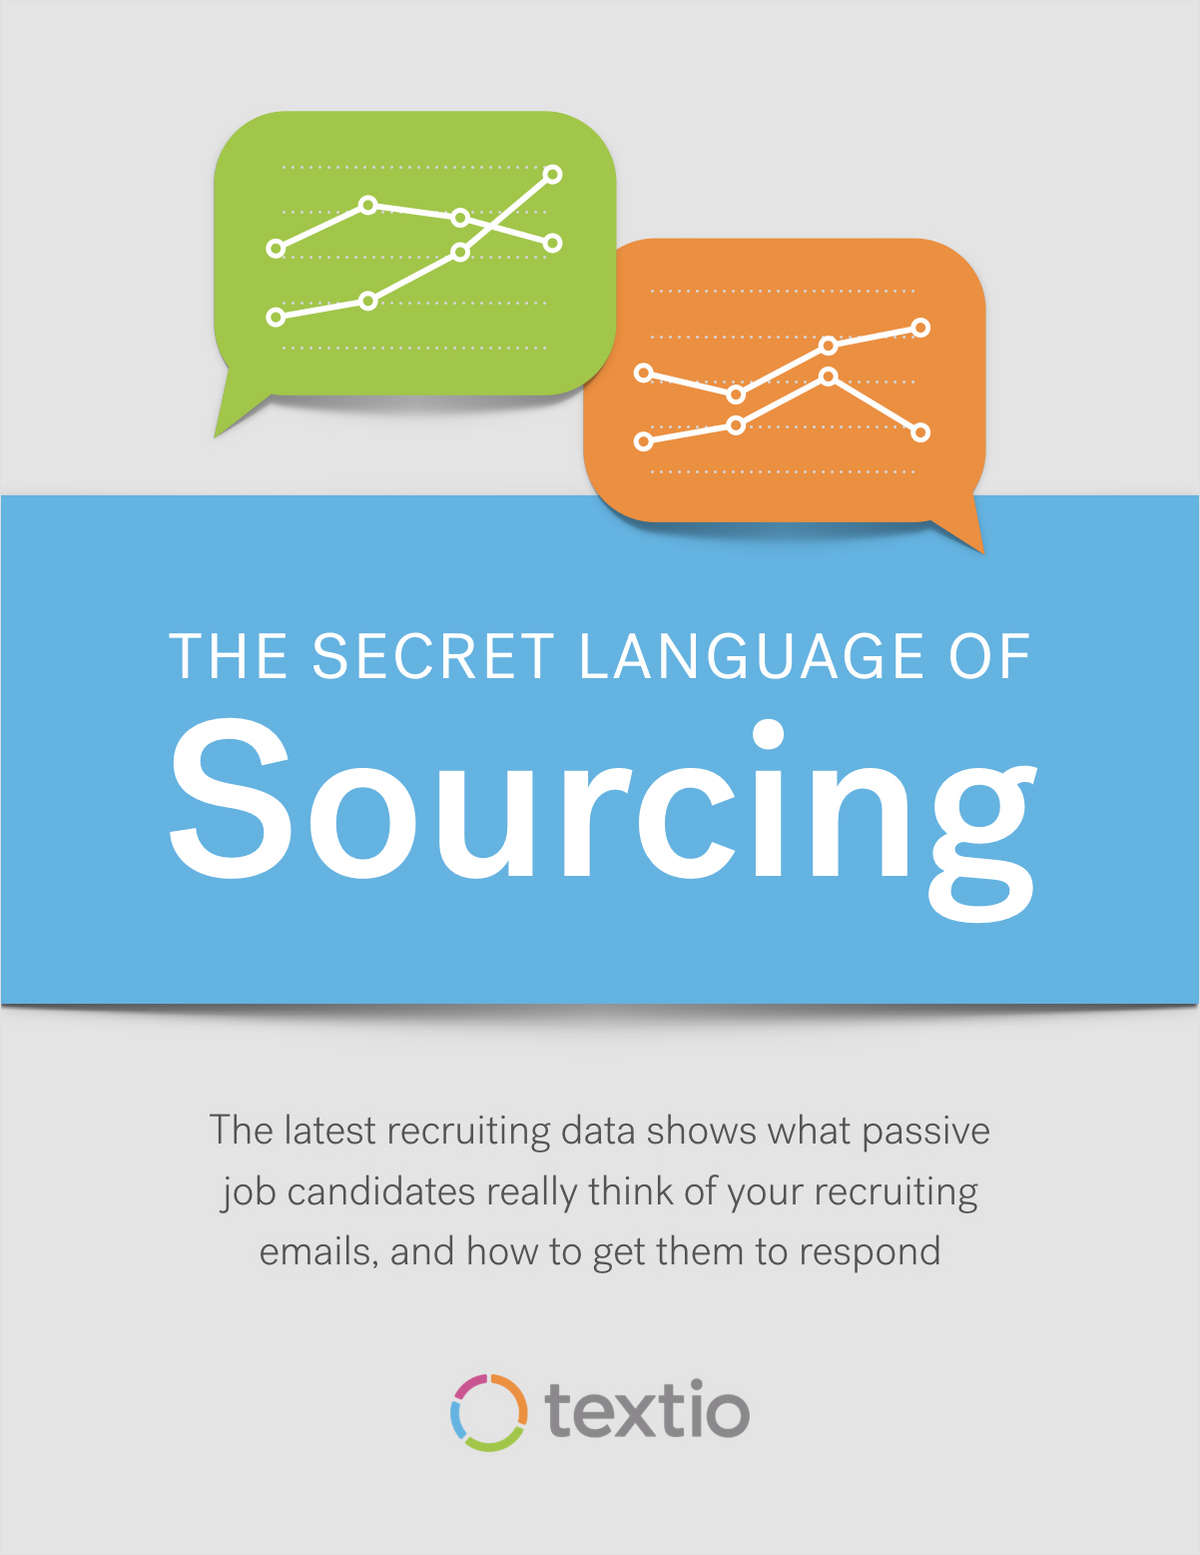 The Secret Language of Sourcing